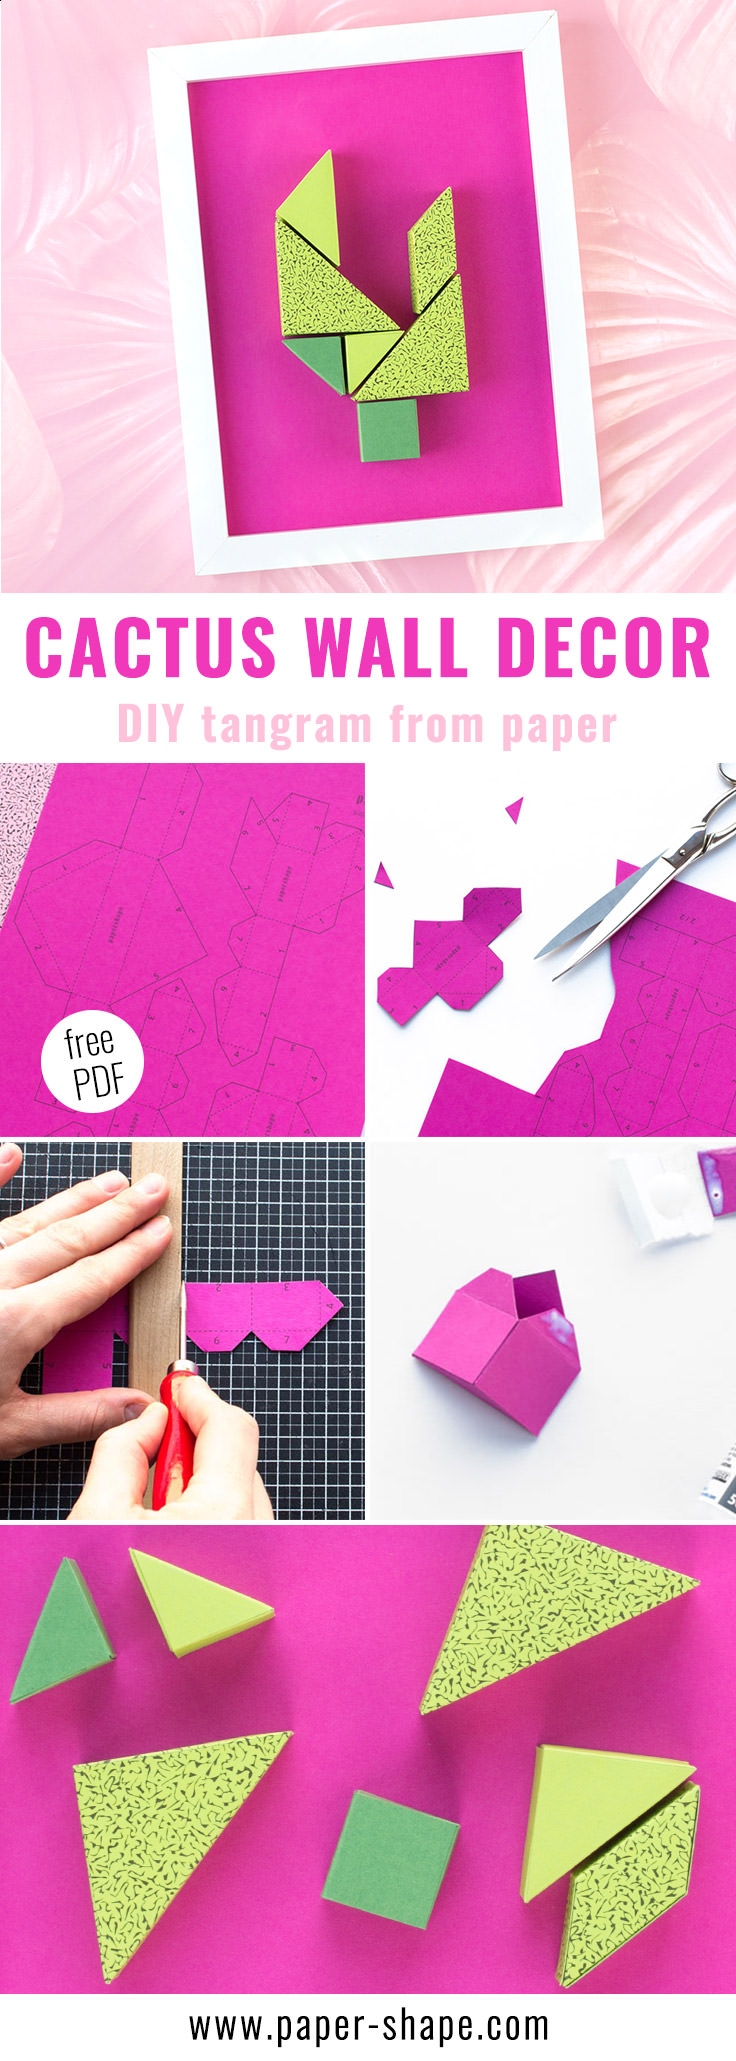 DIY wall decor from paper (free printable): tangram cactus in fancy colors /PaperShape #papershape #walldecor #diy #paper